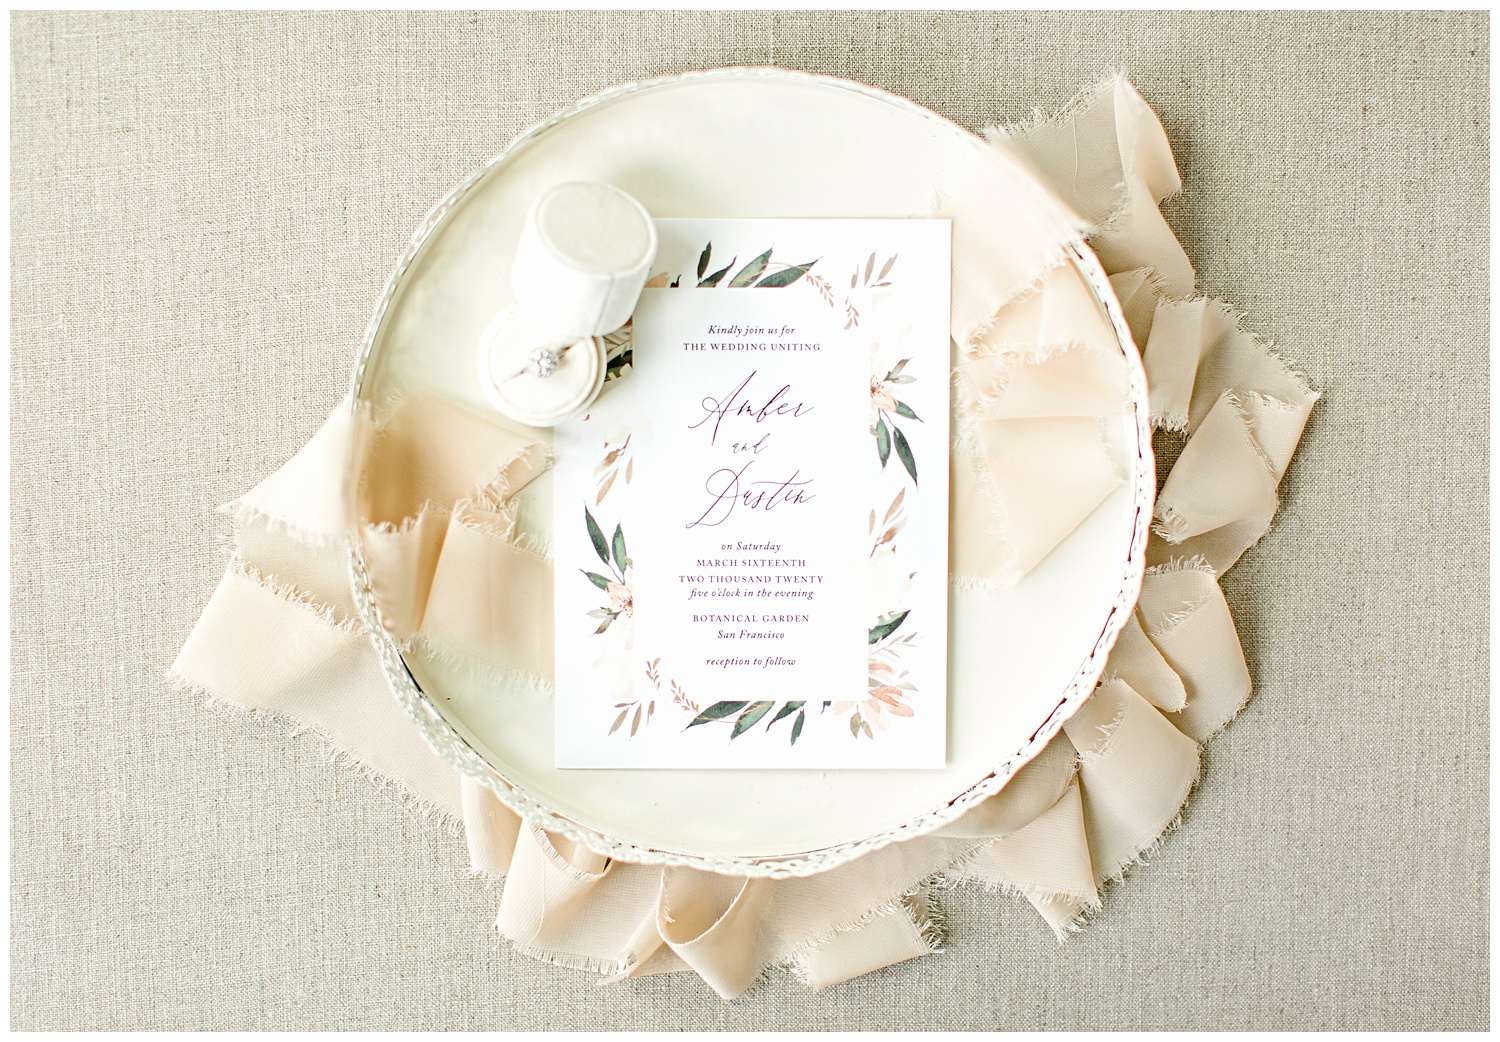 Peach and green watercolor floral wedding invitation from Elli beautifully styled on a cream decorative tray with a cream ring box and peach frayed edge ribbon.